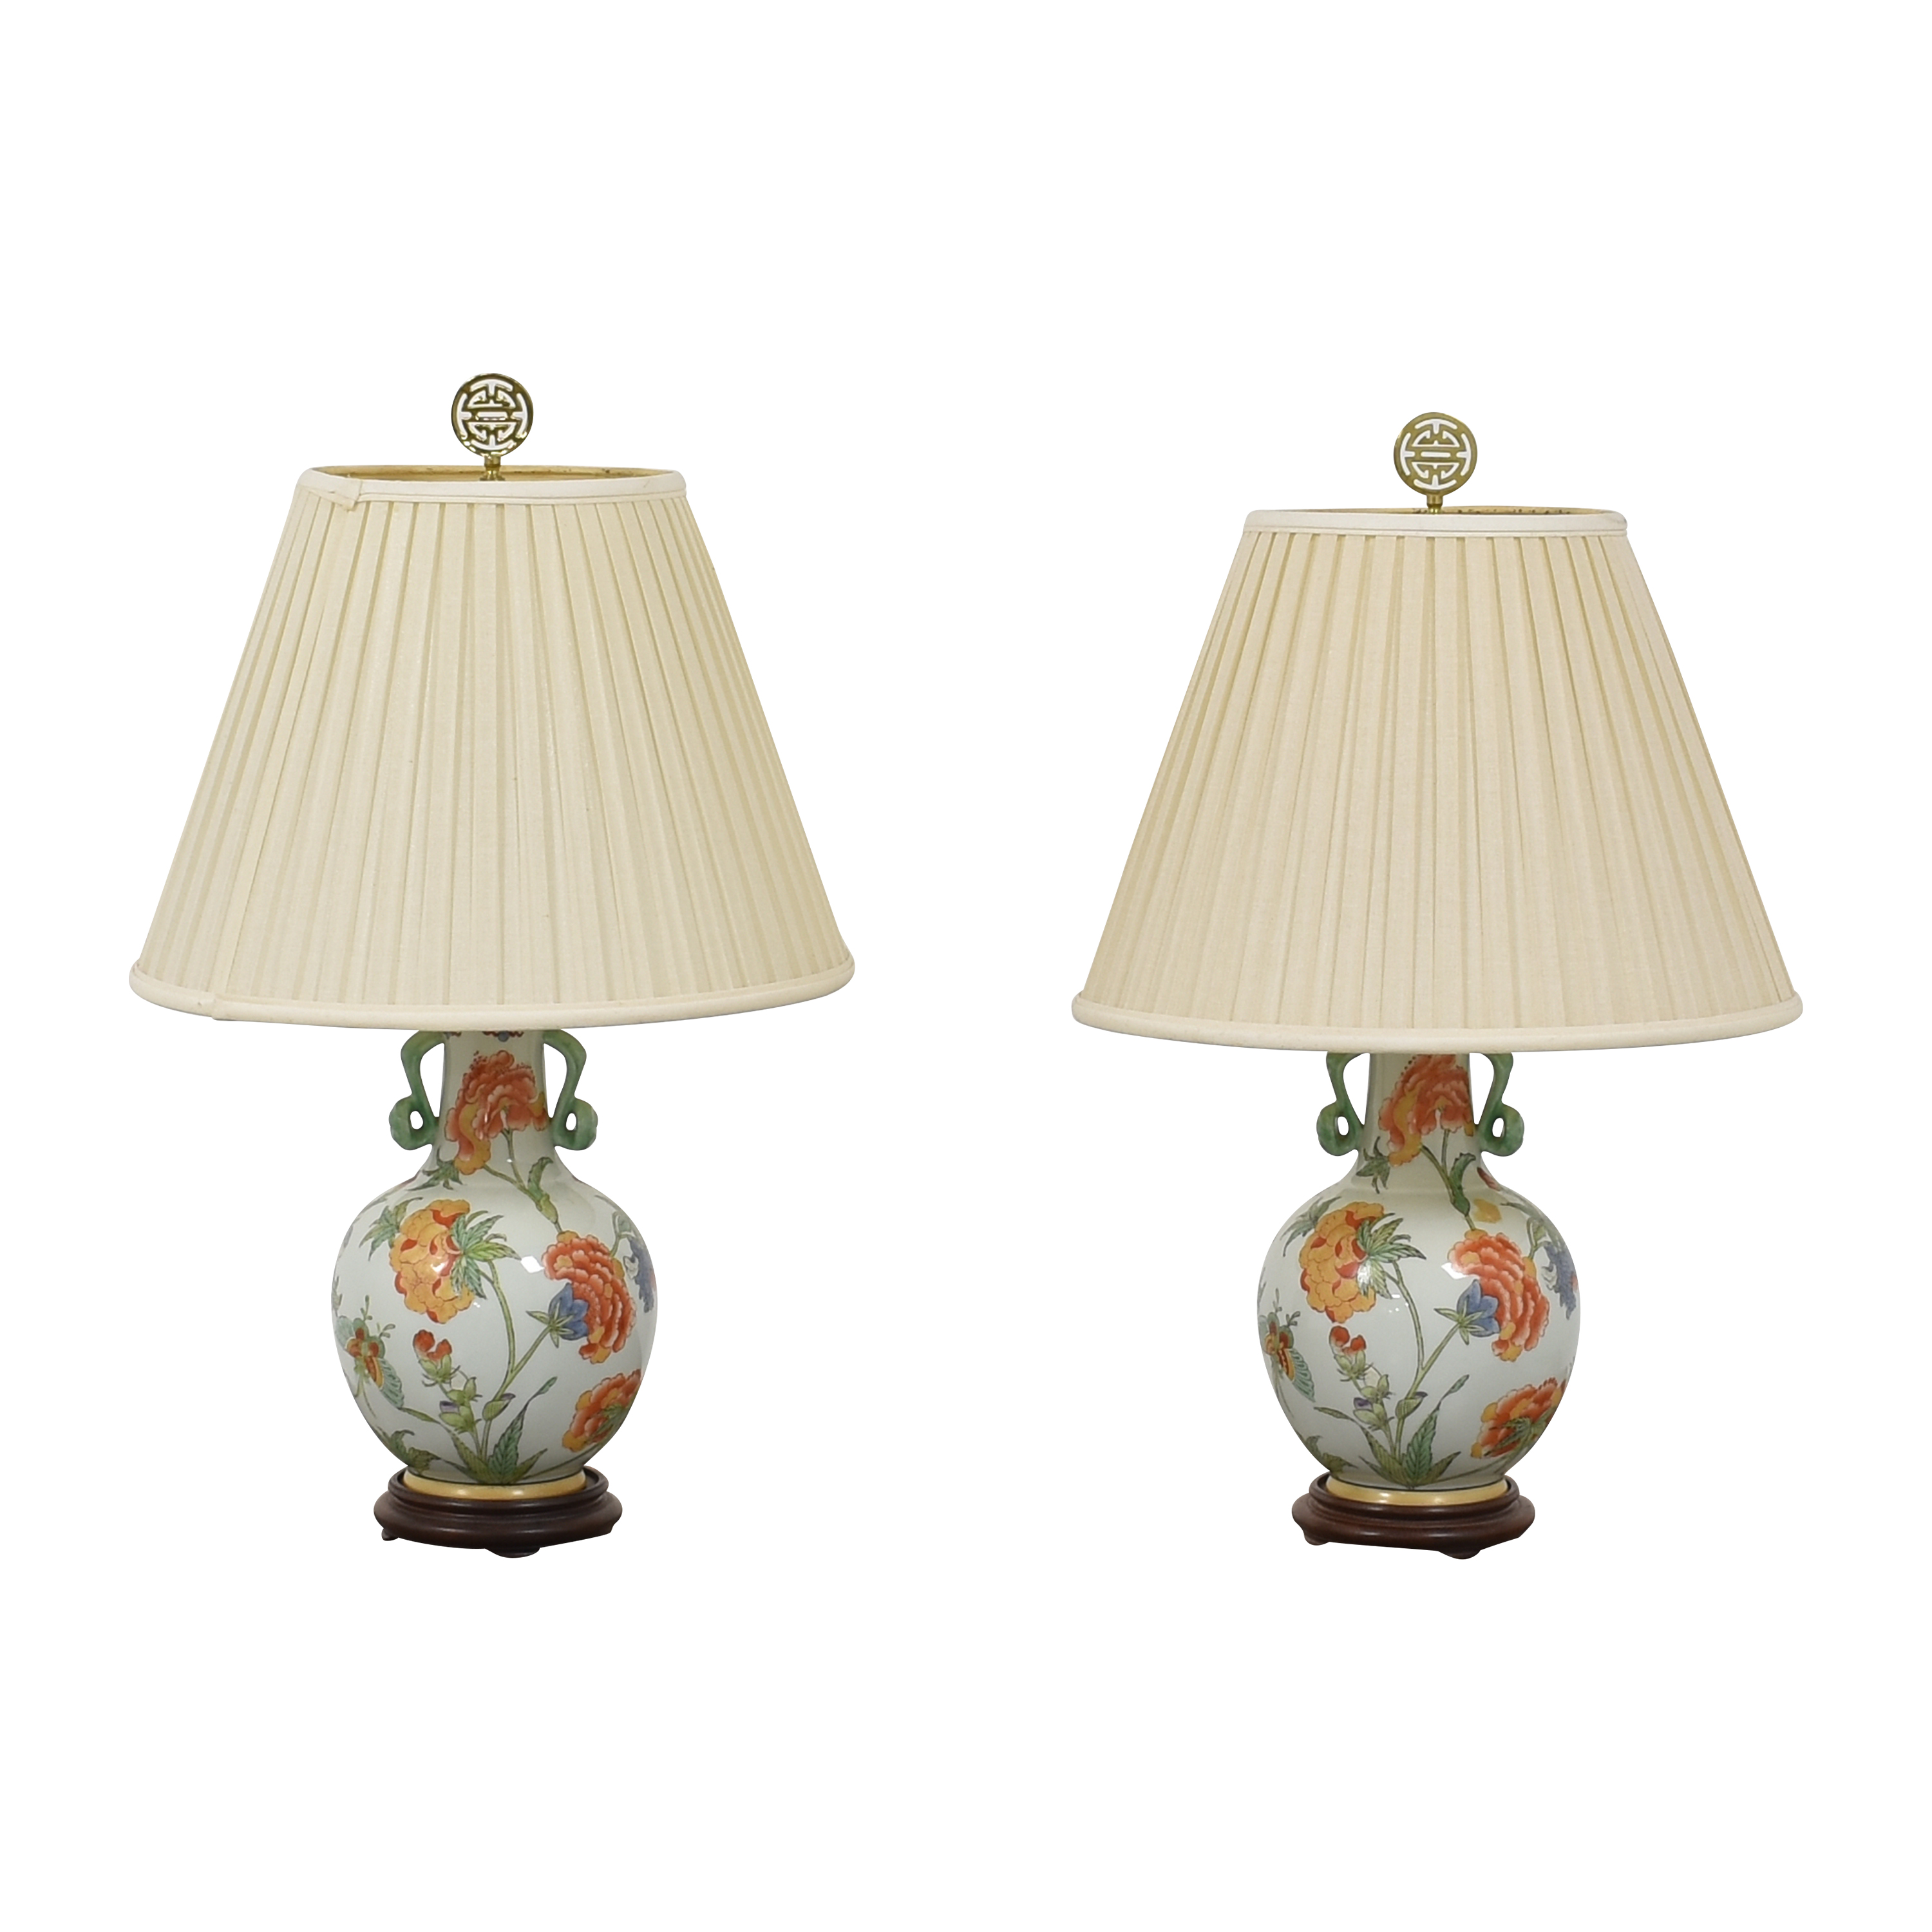 Asian Export Vase Table Lamps for sale